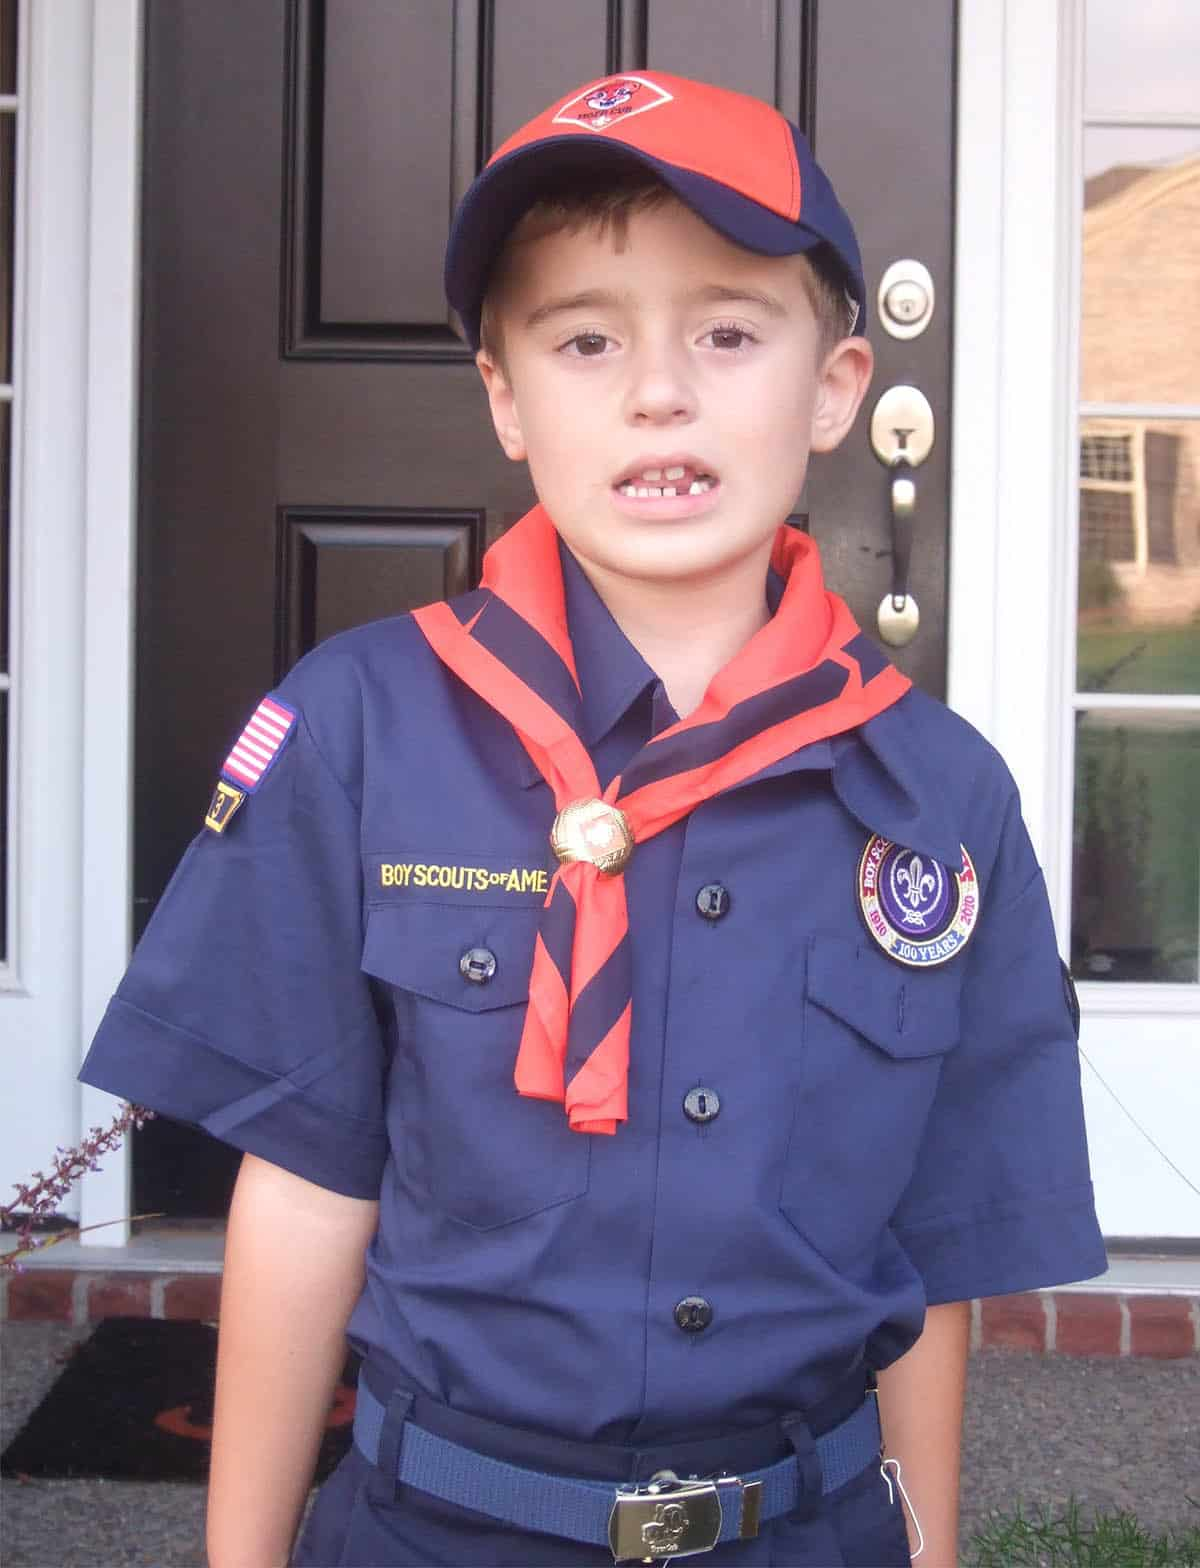 tiger cub scout wearing uniform